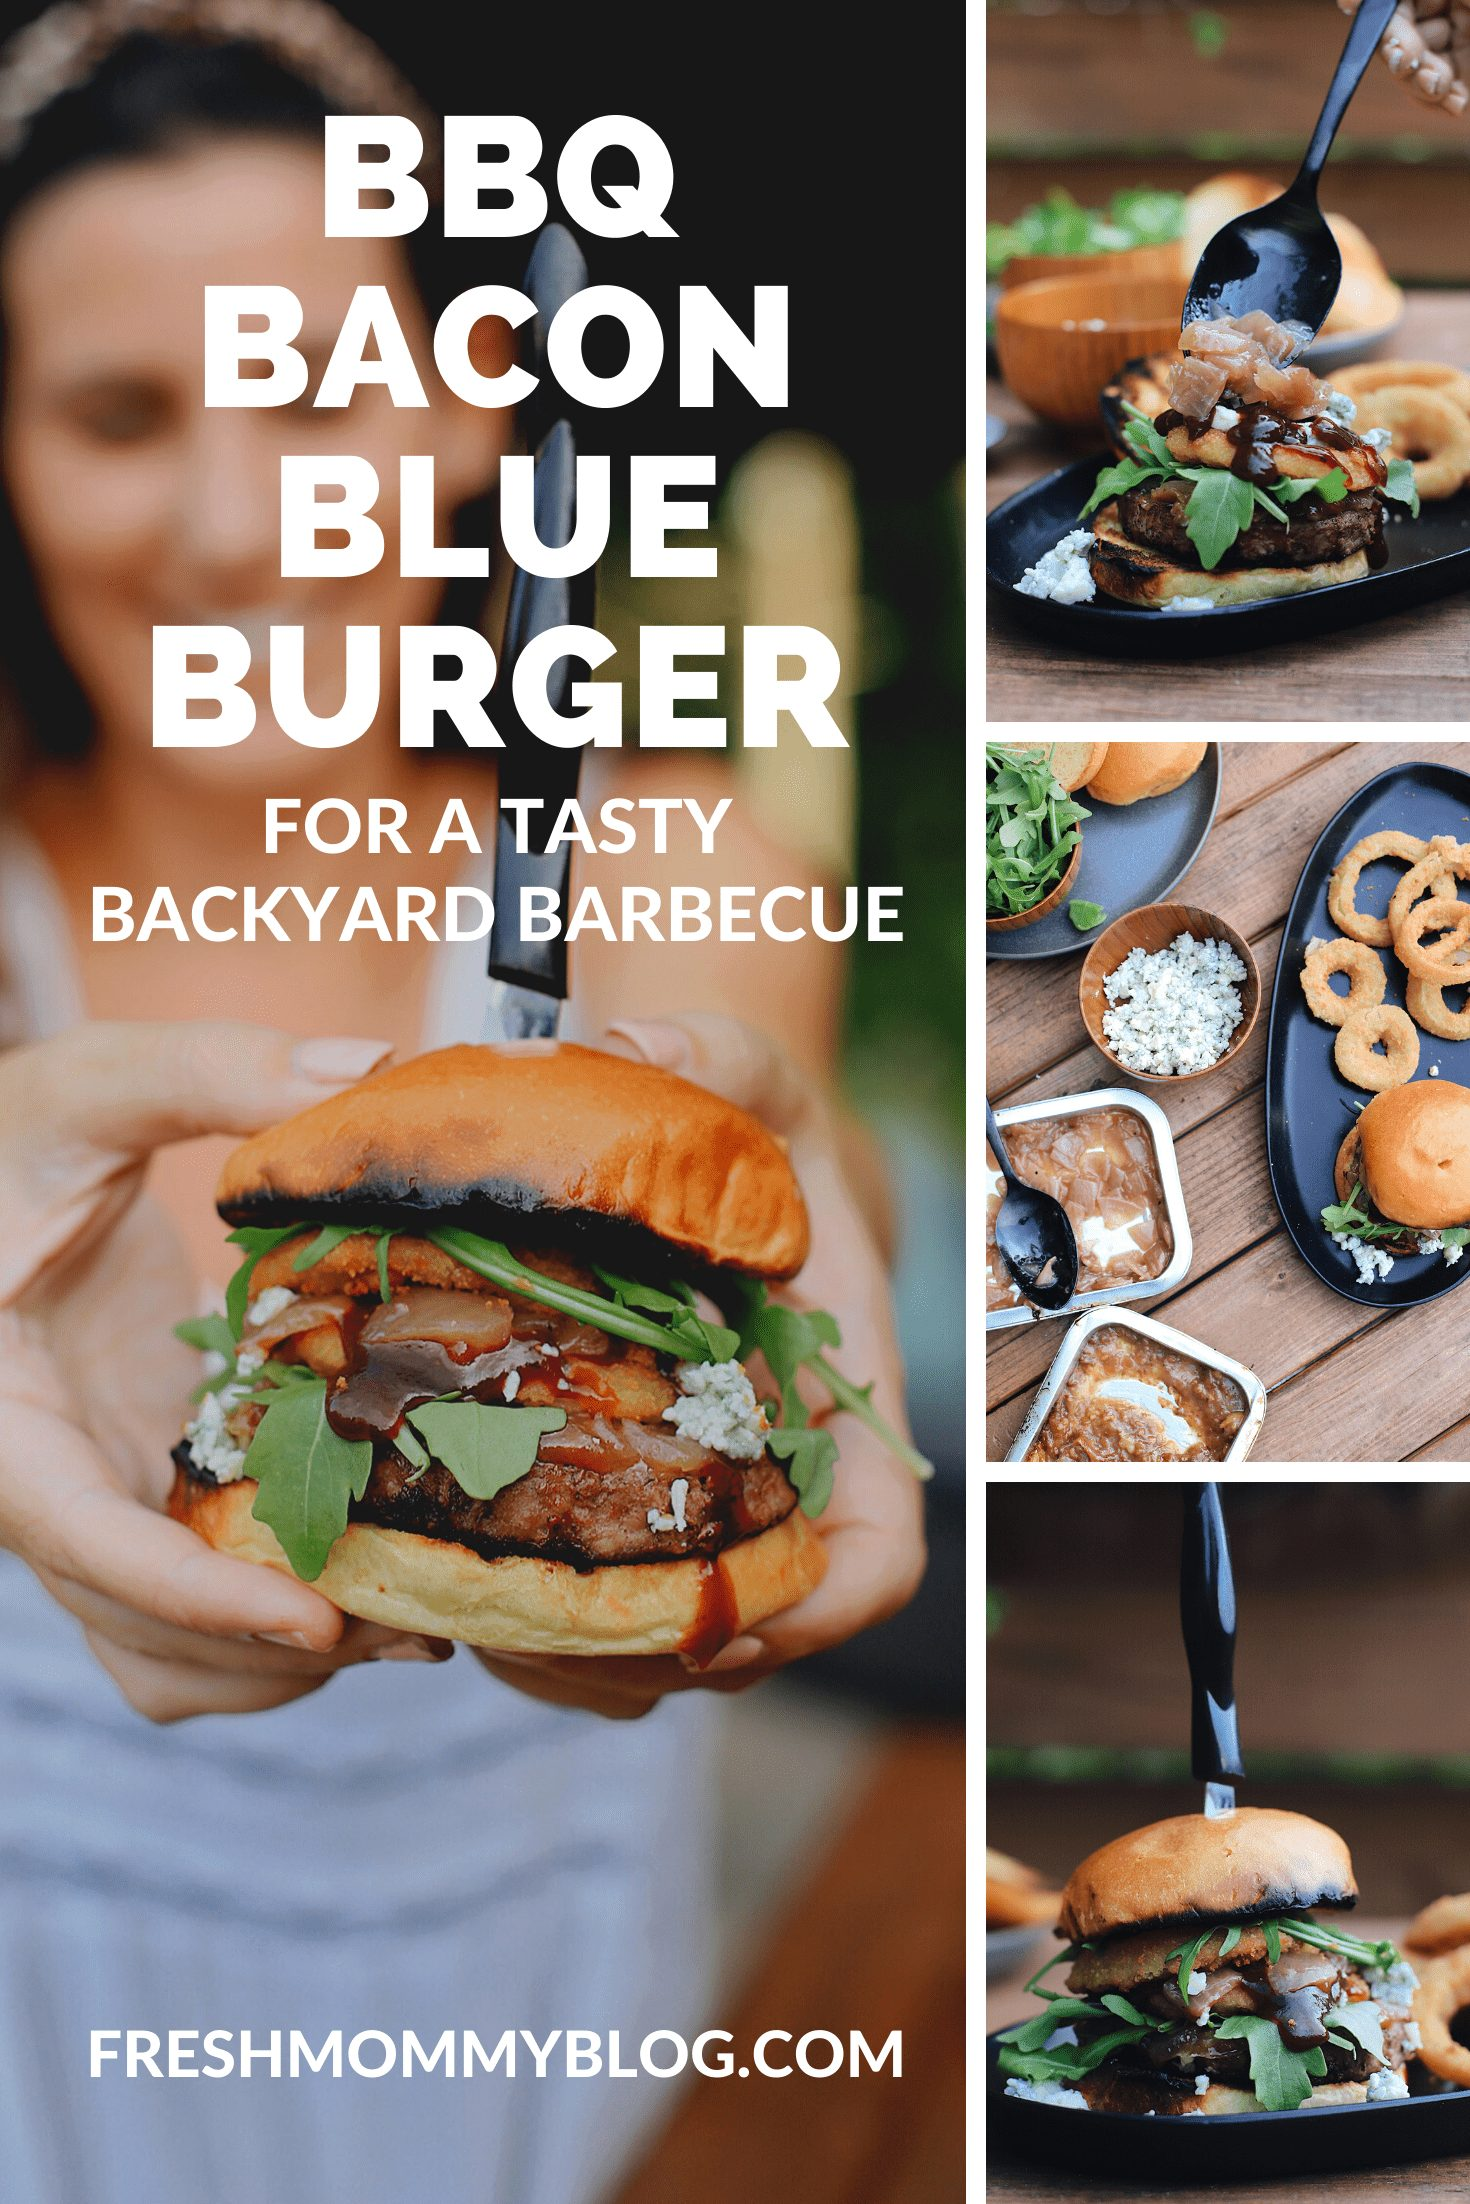 BBQ Bacon Blue Burger for a Tasty Backyard Barbecue. Not your average burger! Juicy beef burgers seasoned with a the perfect amount of spice, topped with smoked bacon jam, sweet bourbon onions, arugula, blue cheese, onion rings, BBQ sauce and a buttery grilled bun! | BBQ Burger by popular Florida lifestyle blog, Fresh Mommy Blog: Pinterest image of a BBQ Burger with bacon and blue cheese.